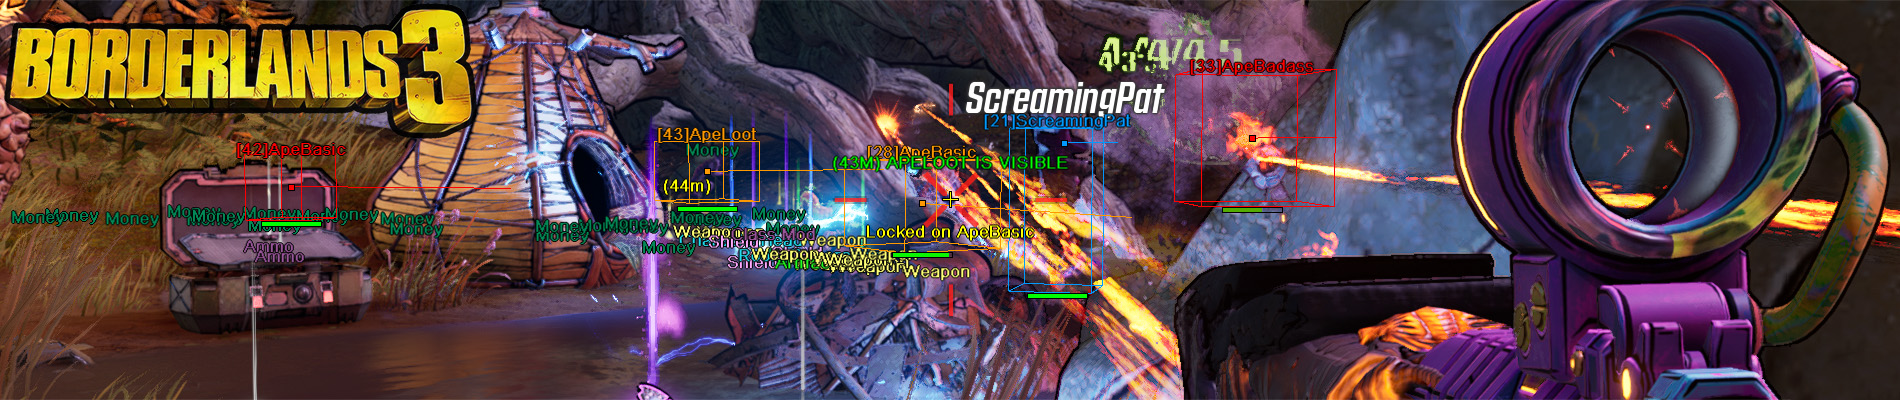 Borderlands 3 Hack/Cheat/Aimbot available as a Single Subscription!